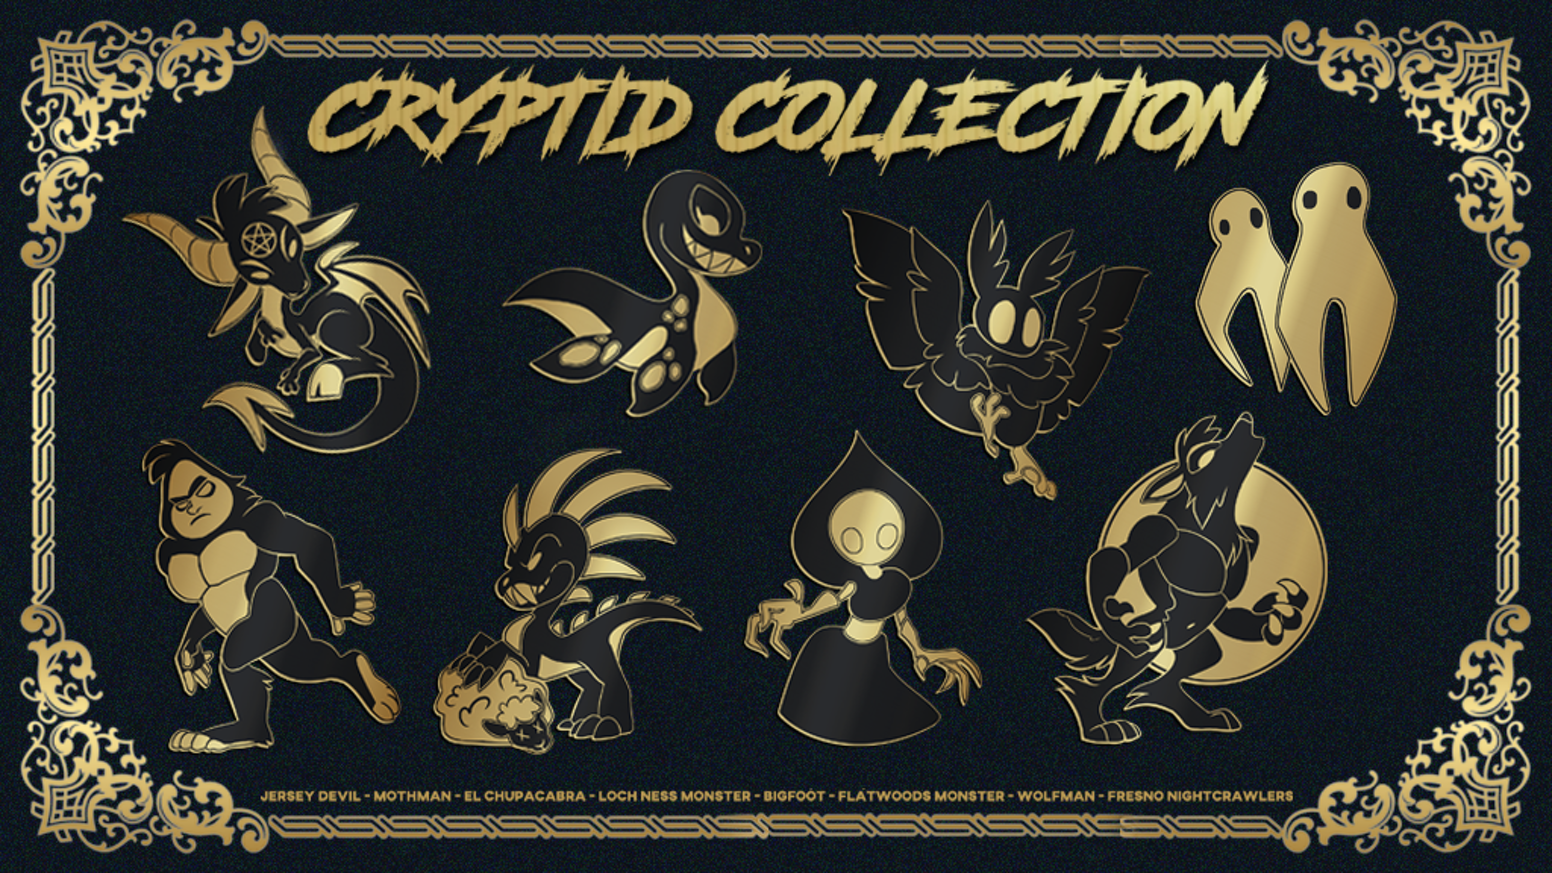 The Cryptid Collection is an Enamel Pin Series for all of my Urban Legend lovers!